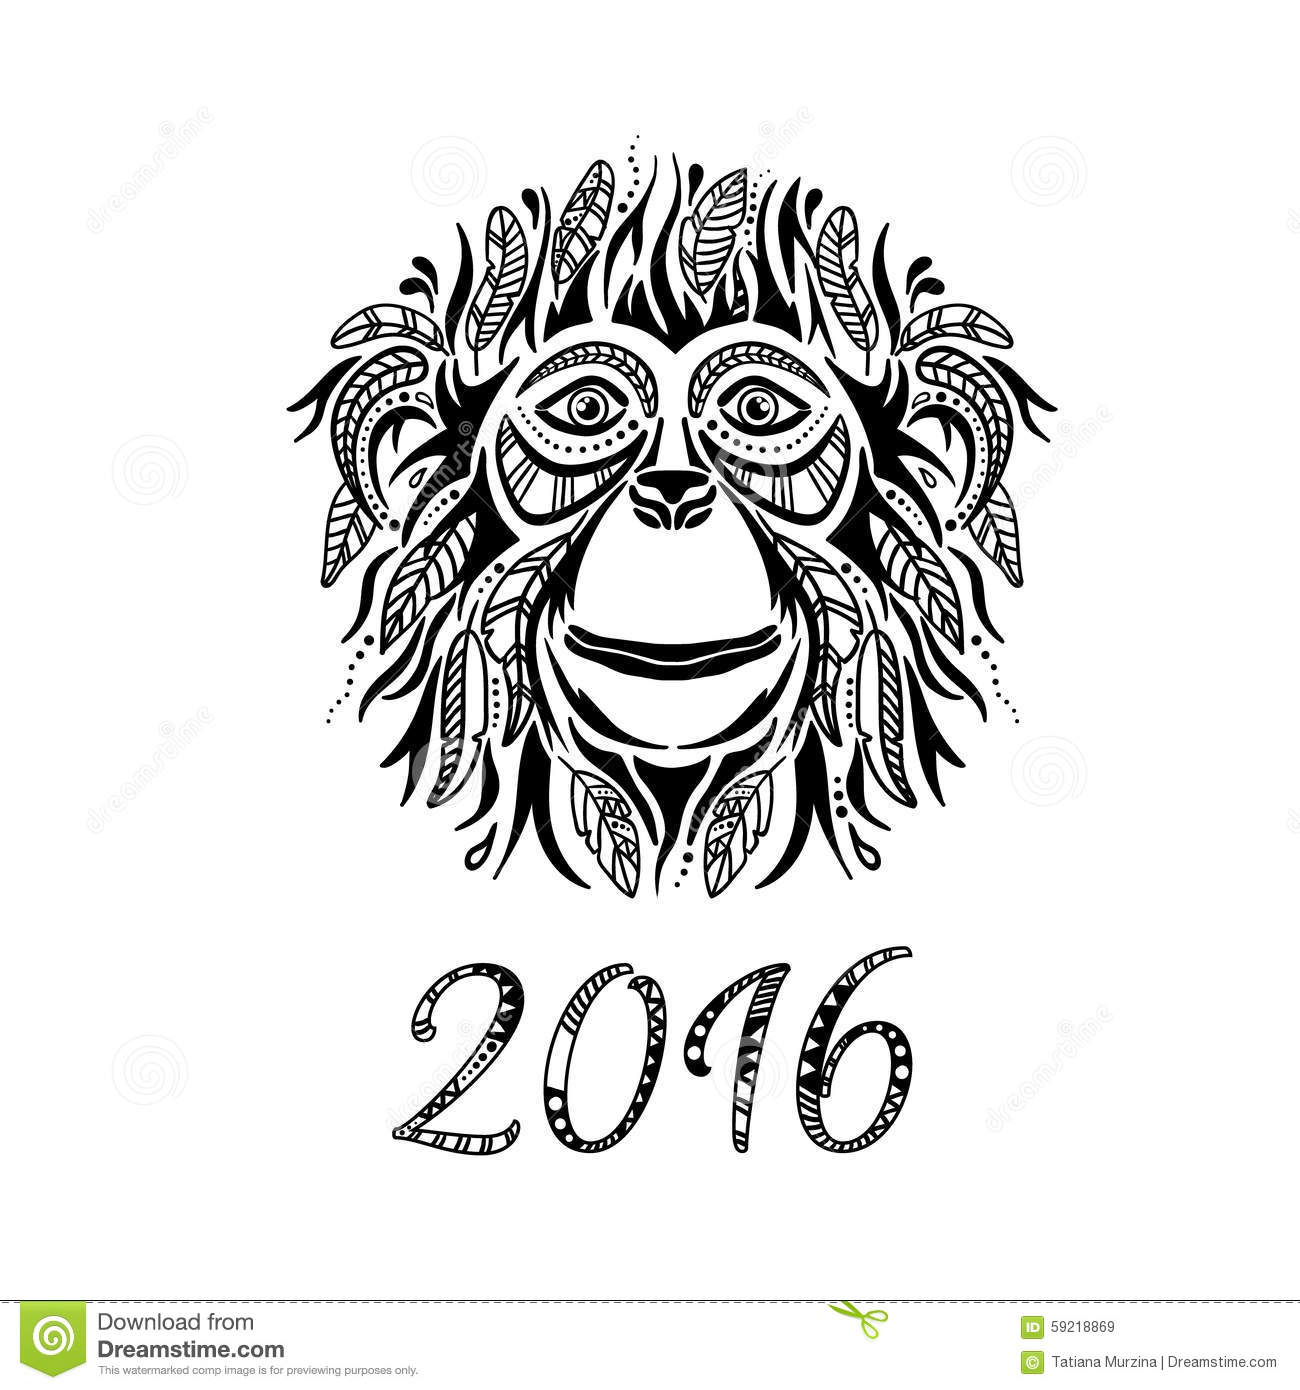 Happy new year 2016 year of the monkey stock for Year of the monkey tattoo